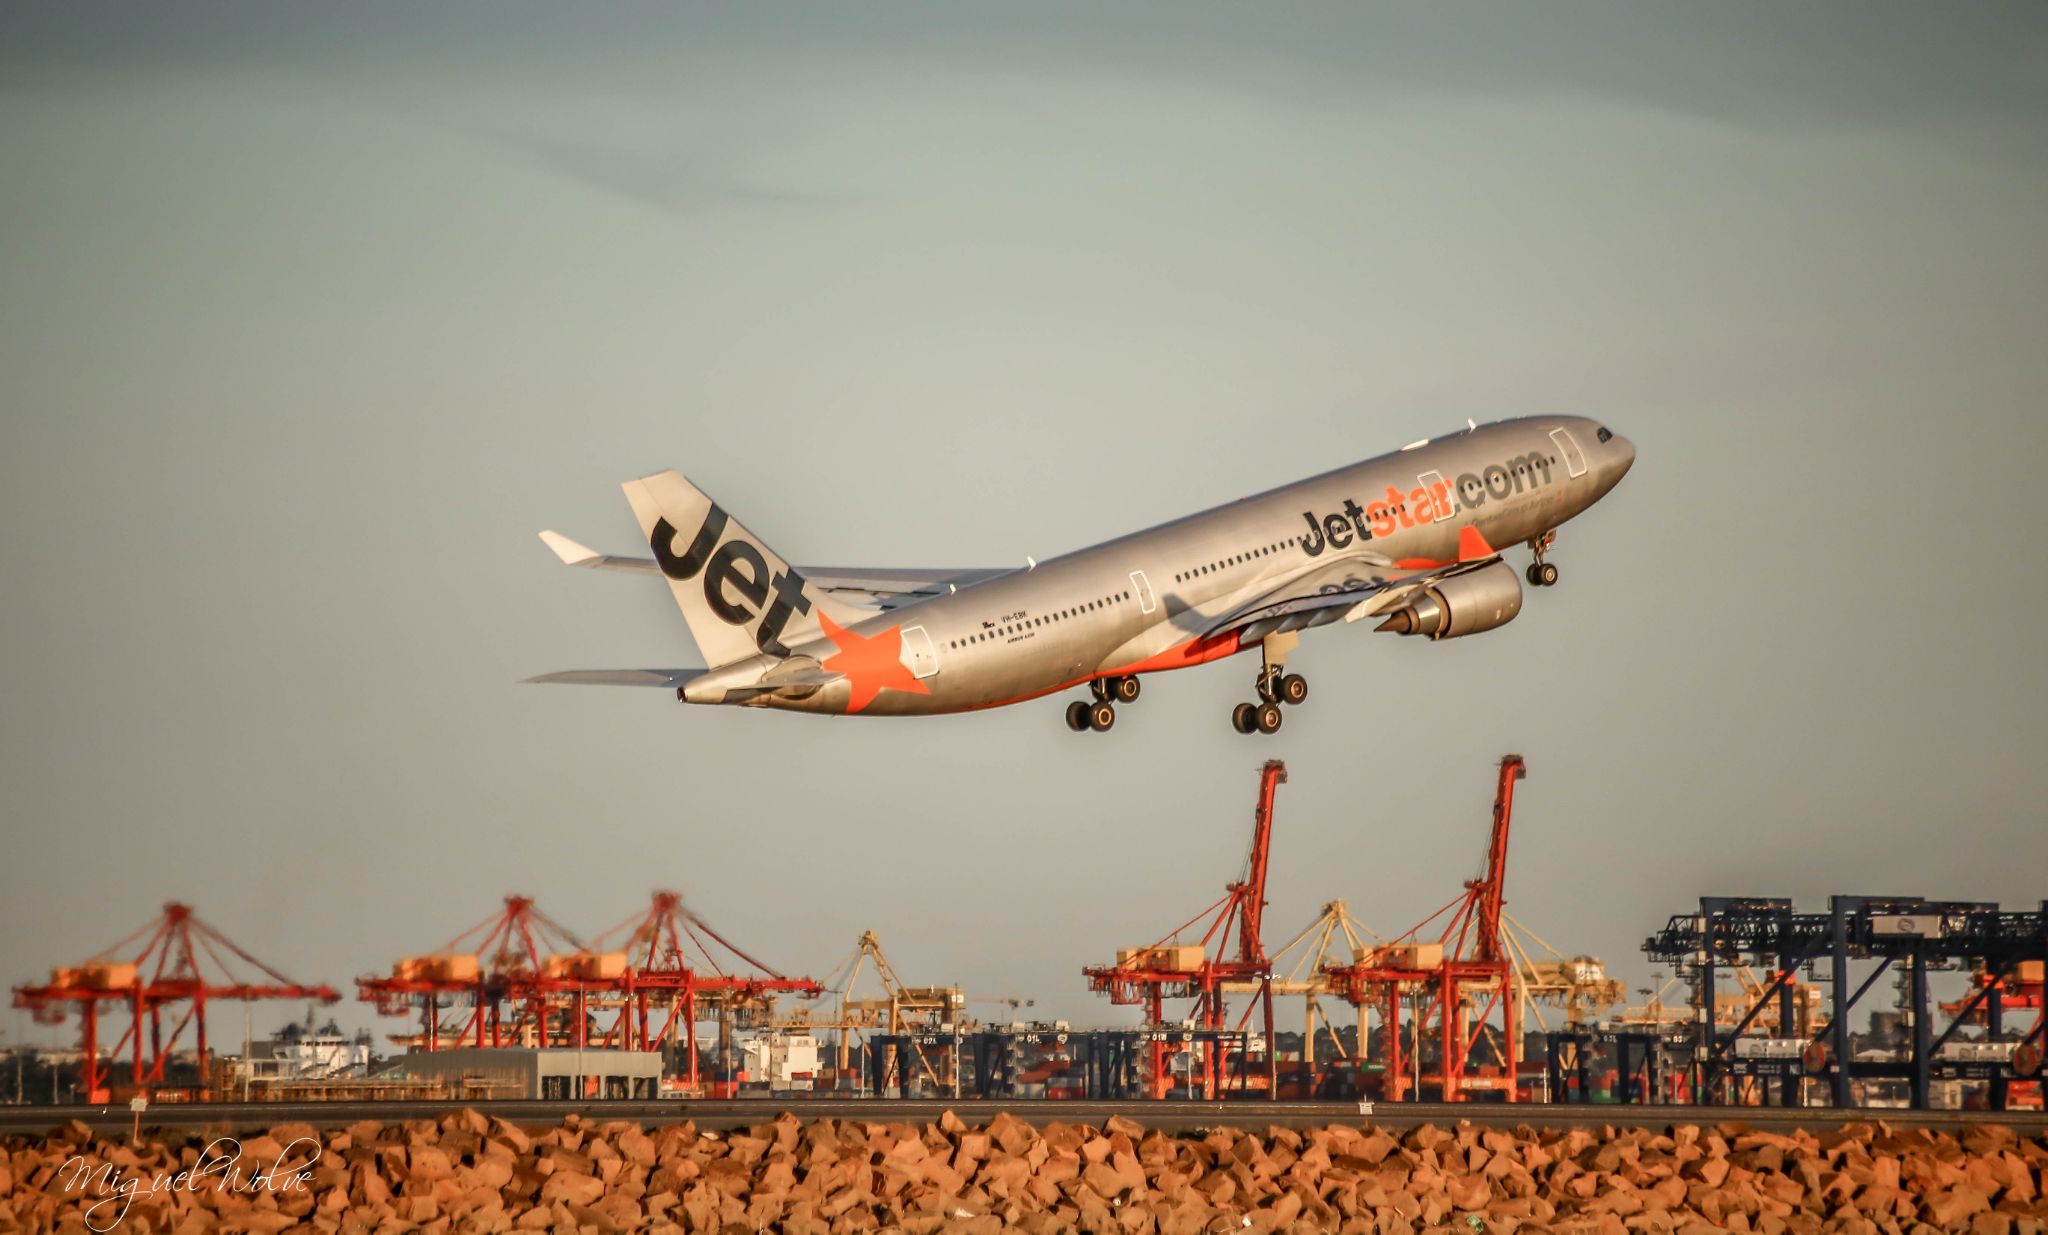 Jetstar  by miguelwolve